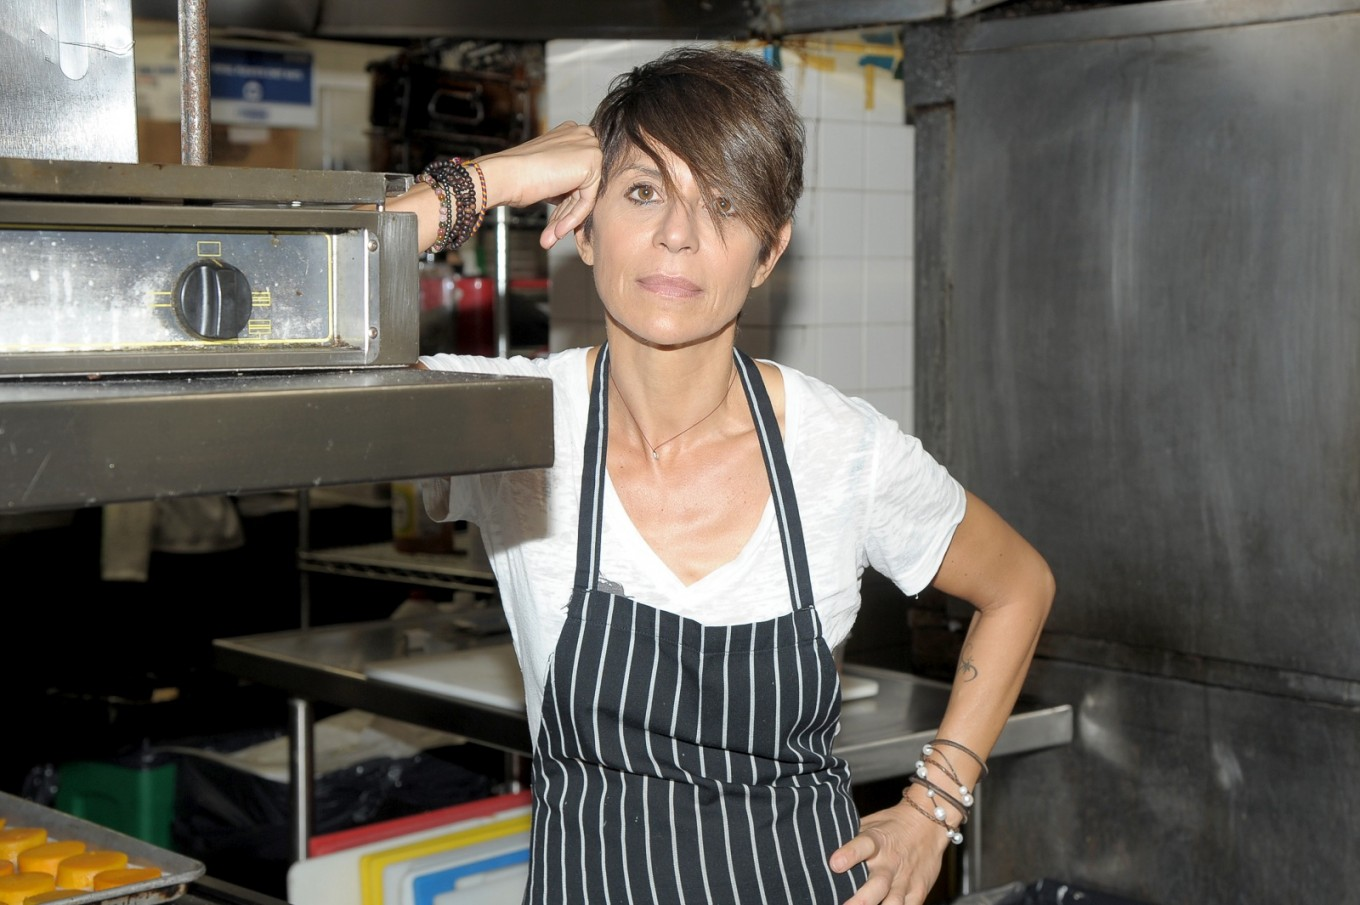 French chef first woman to earn three Michelin stars in US